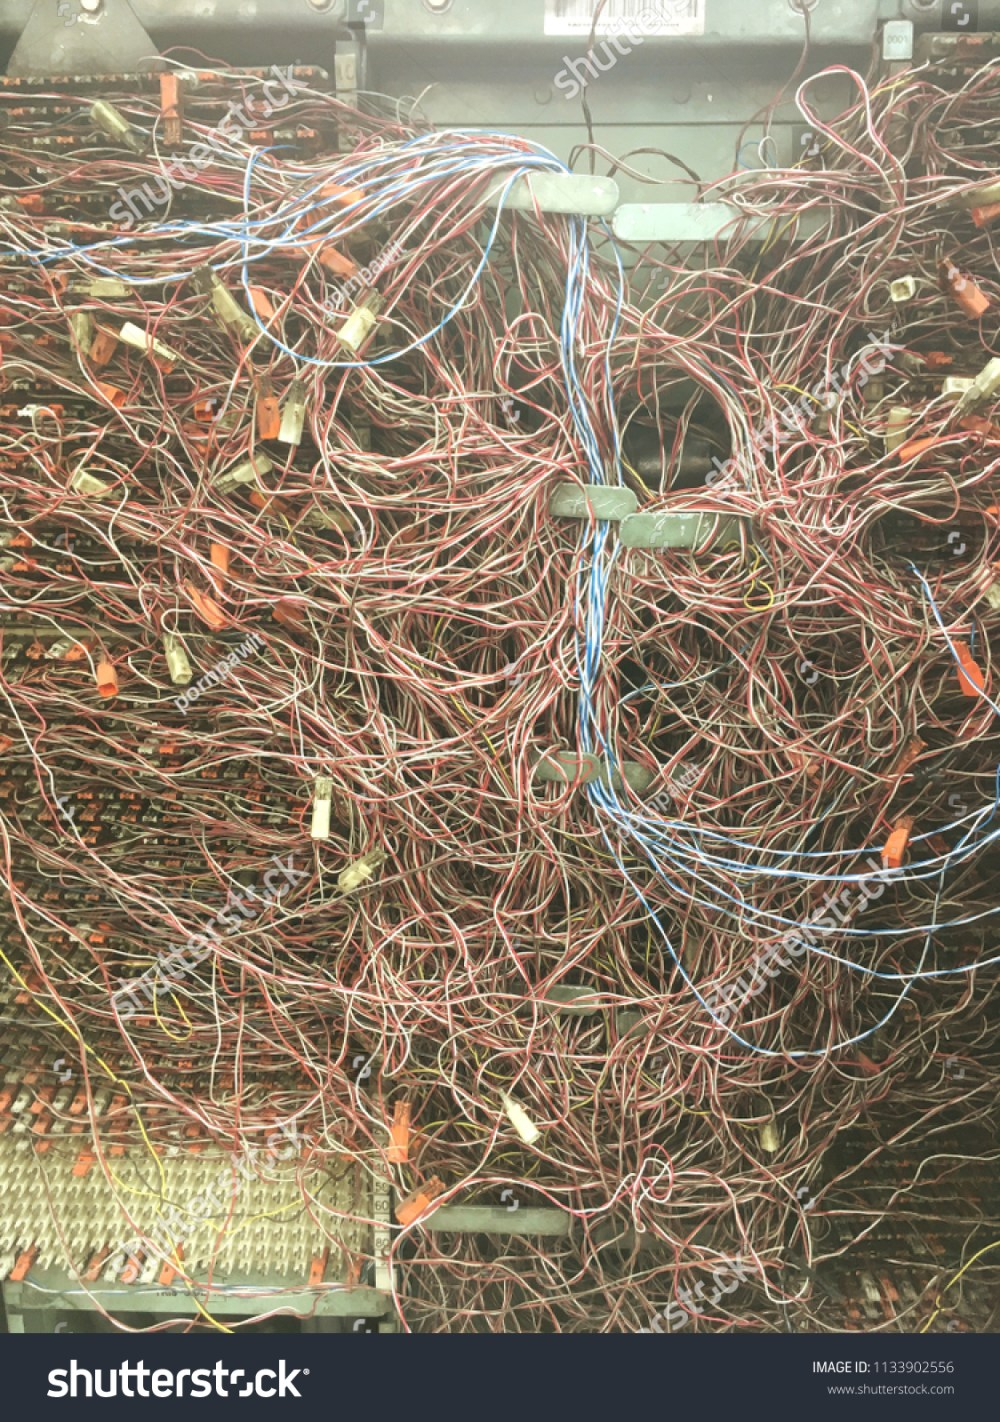 medium resolution of the messy telephone wire in switchboard panel